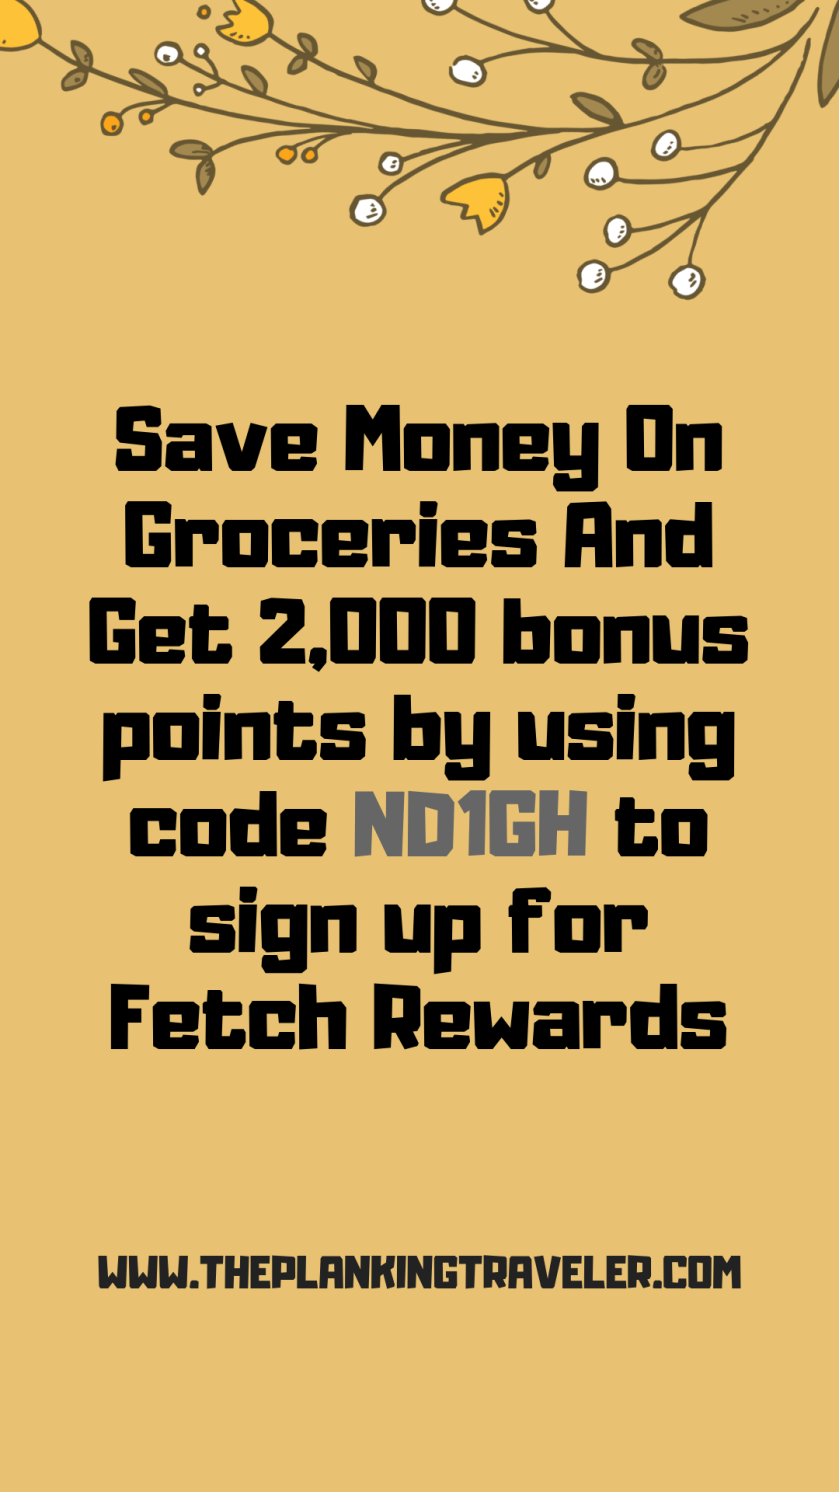 Save Money On Groceries And Get 2,000 bonus points by using code ND1GH to sign up for Fetch Rewards